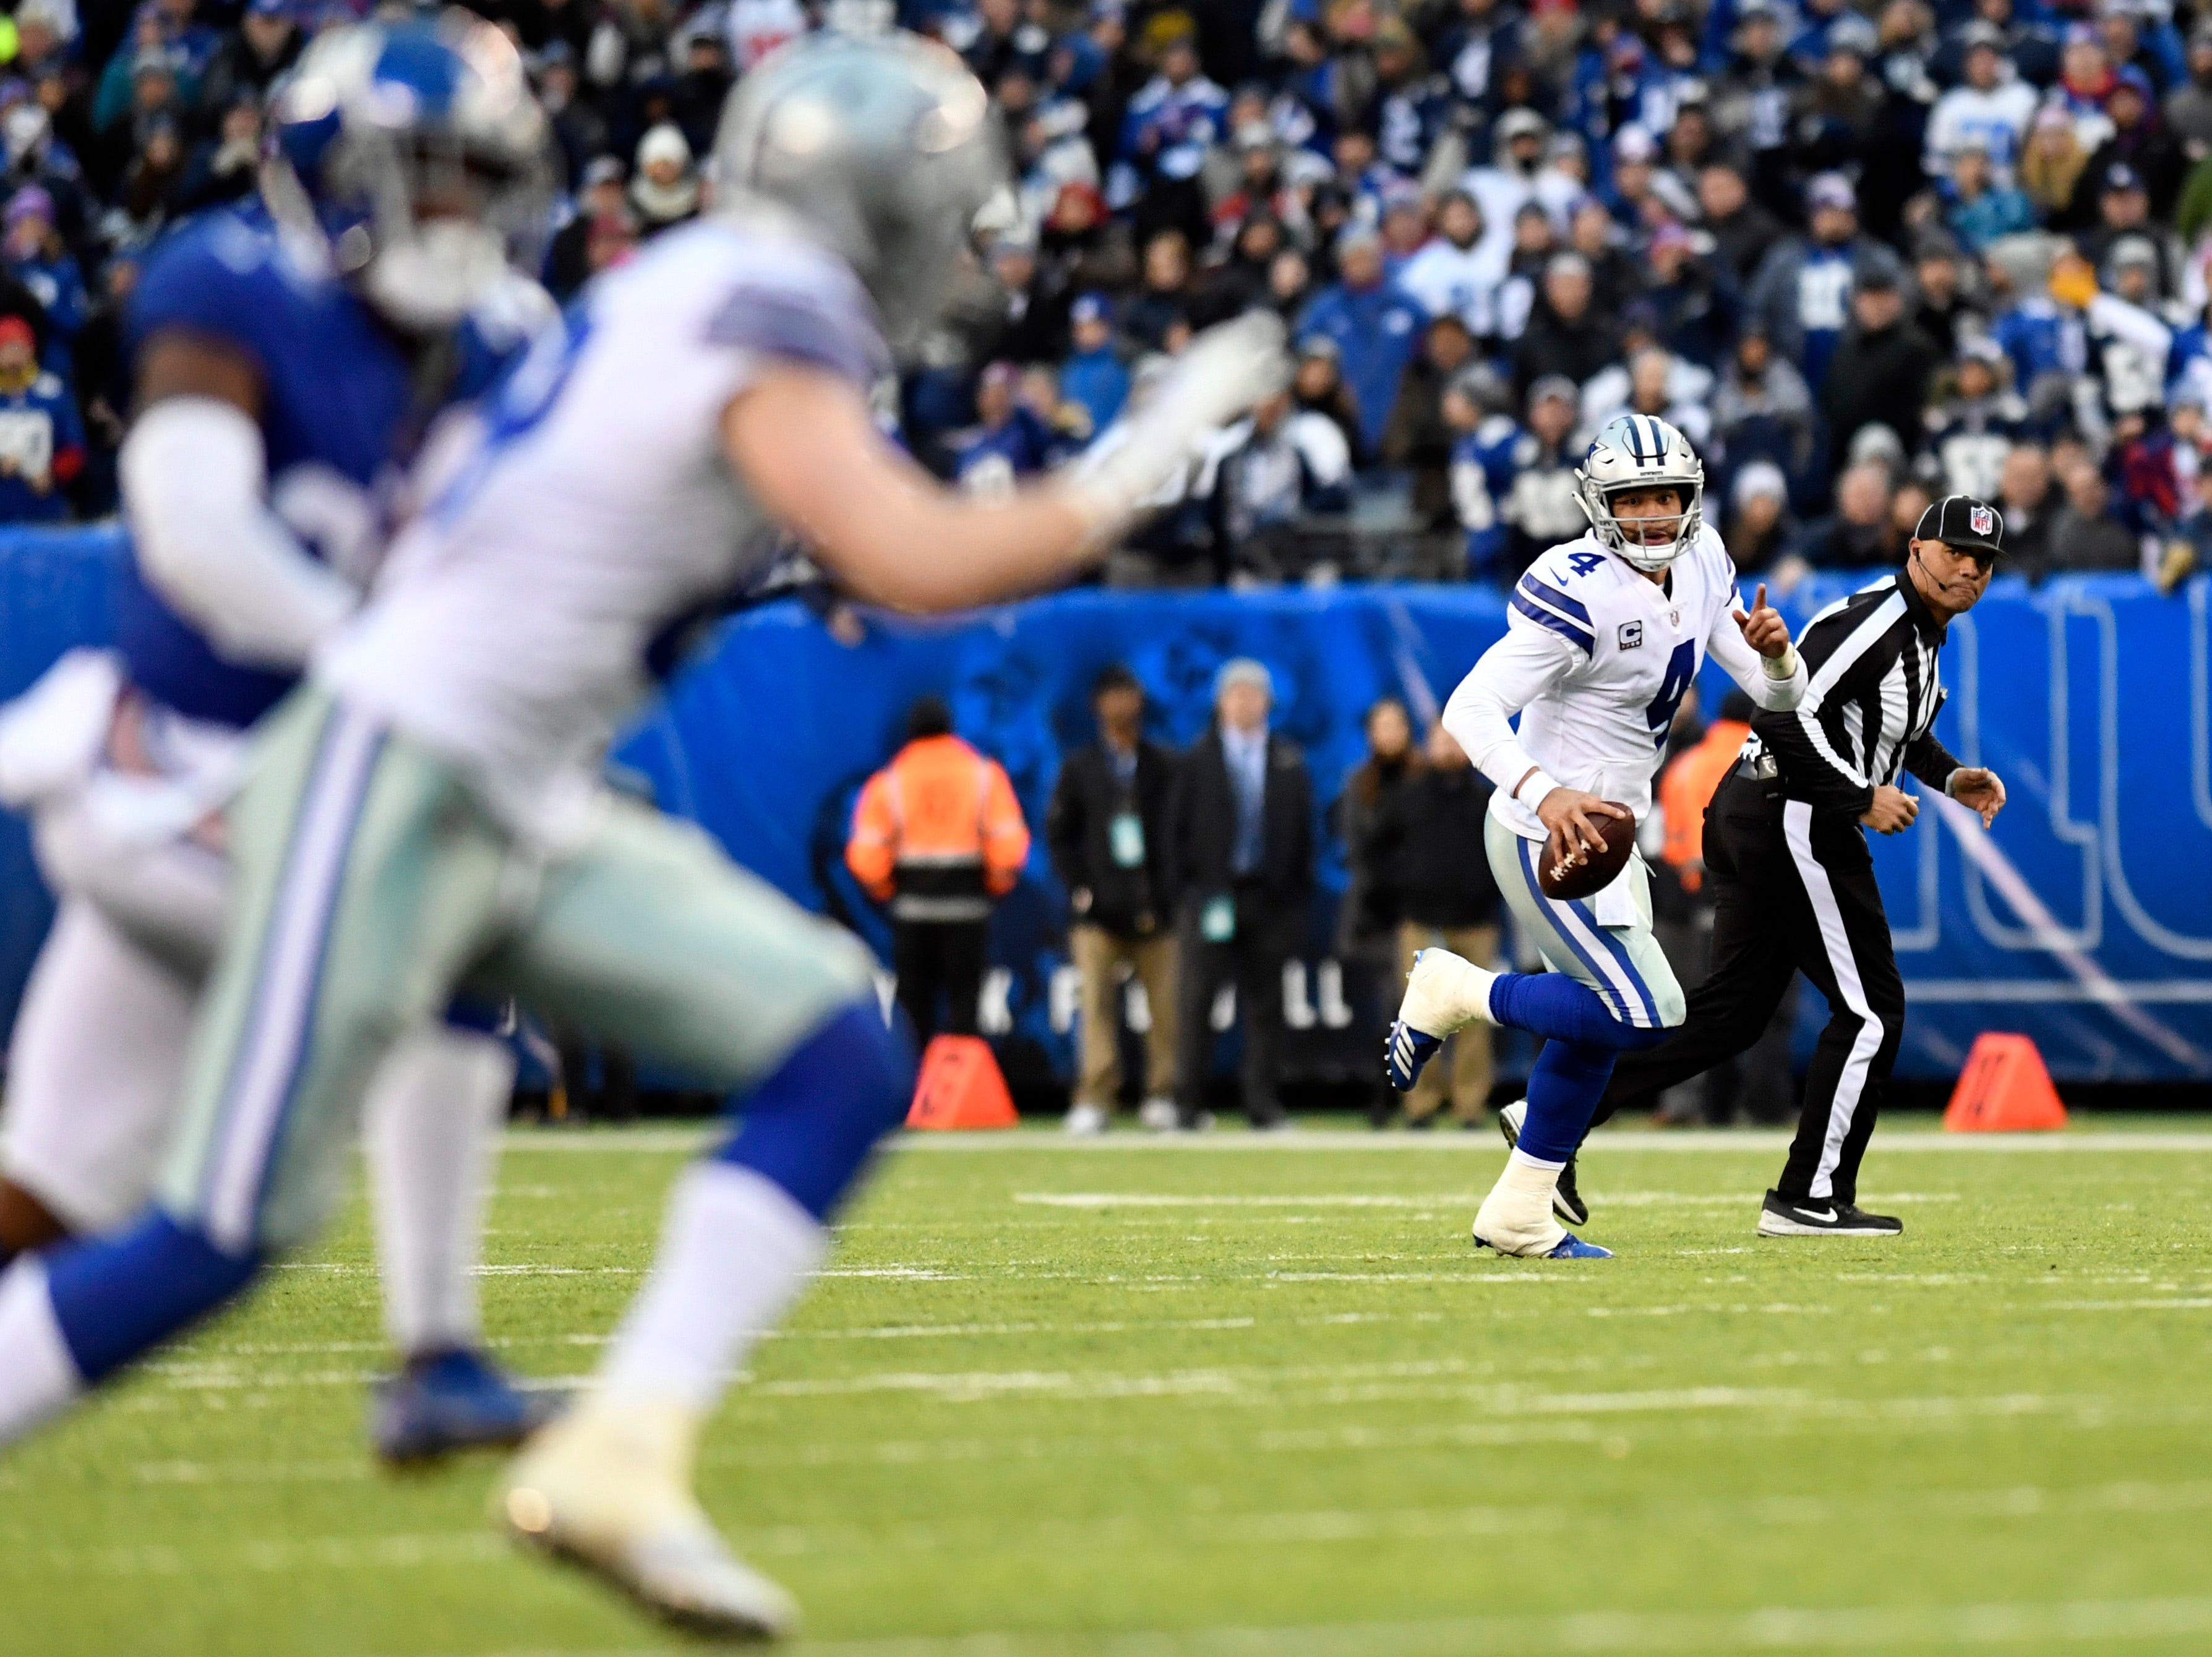 Dallas Cowboys quarterback Dak Prescott (4) gestures to wide receiver Cole Beasley (foreground, left) before throwing a touchdown pass in the fourth quarter. The New York Giants lose to the Dallas Cowboys 36-35 on Sunday, Dec. 30, 2018, in East Rutherford.